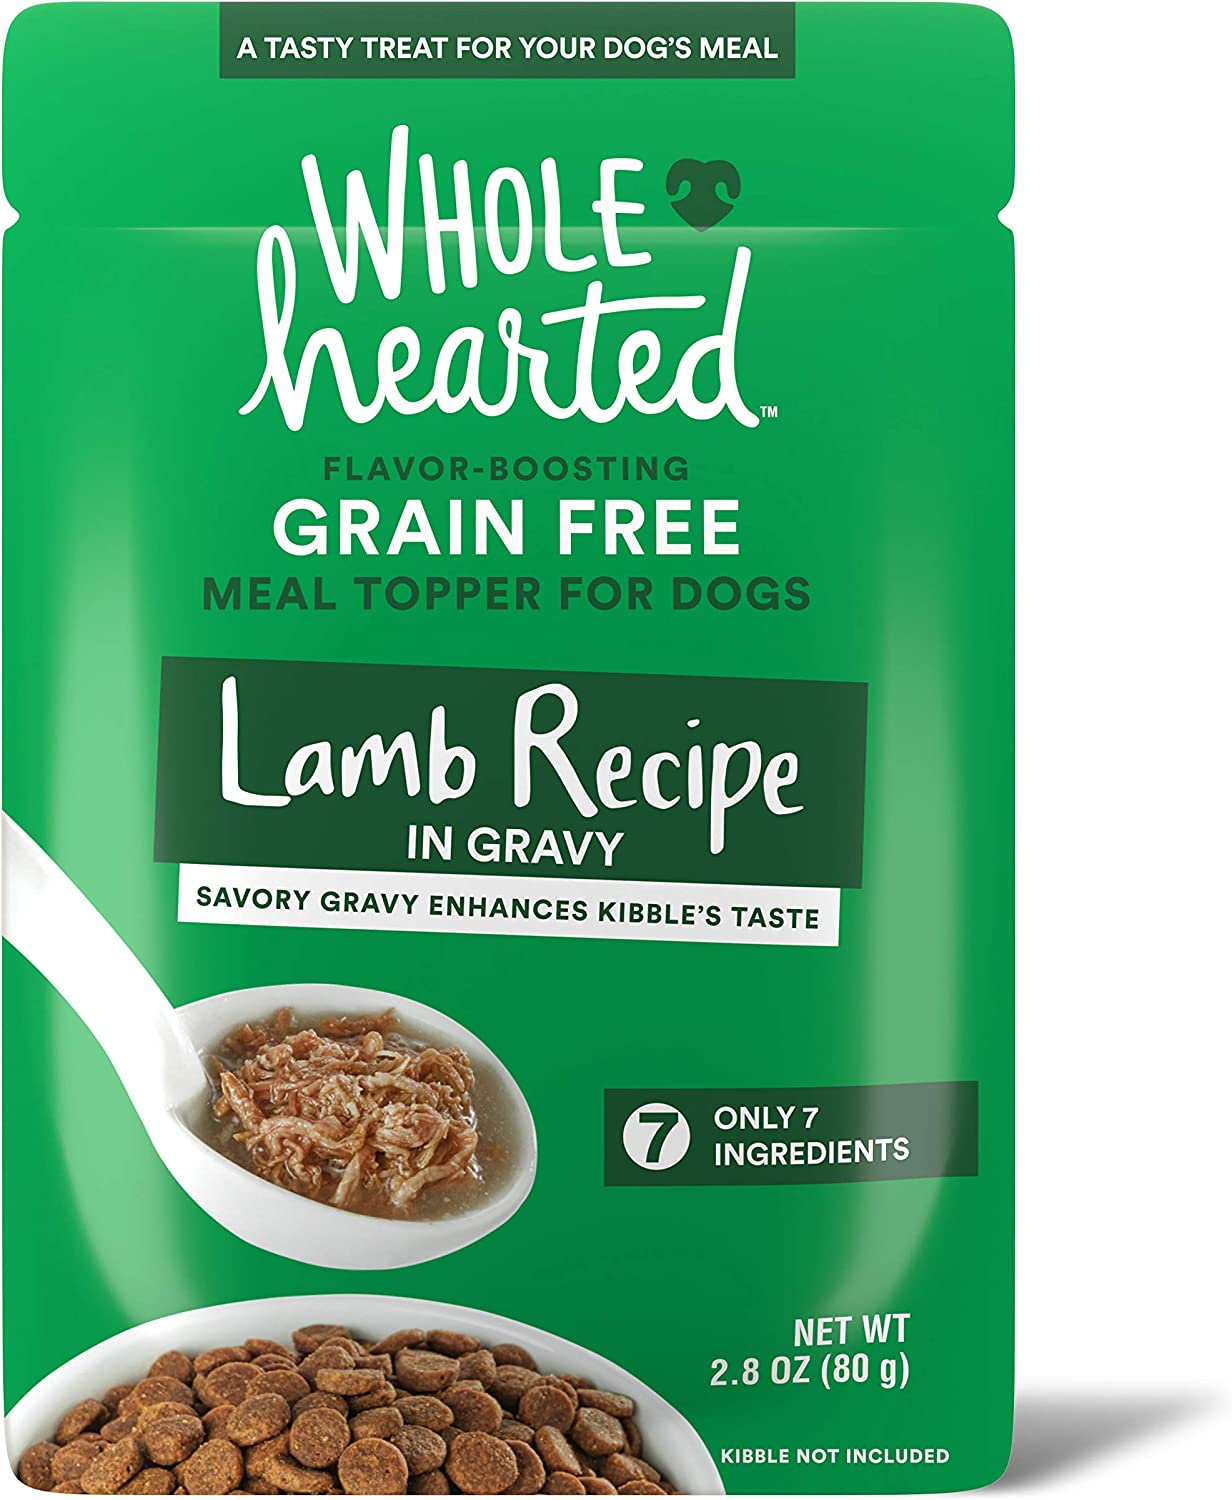 WholeHearted Lamb Recipe in Gravy Dog Meal Topper, 2.8 oz, Case of 6, 6 X 2.8 OZ